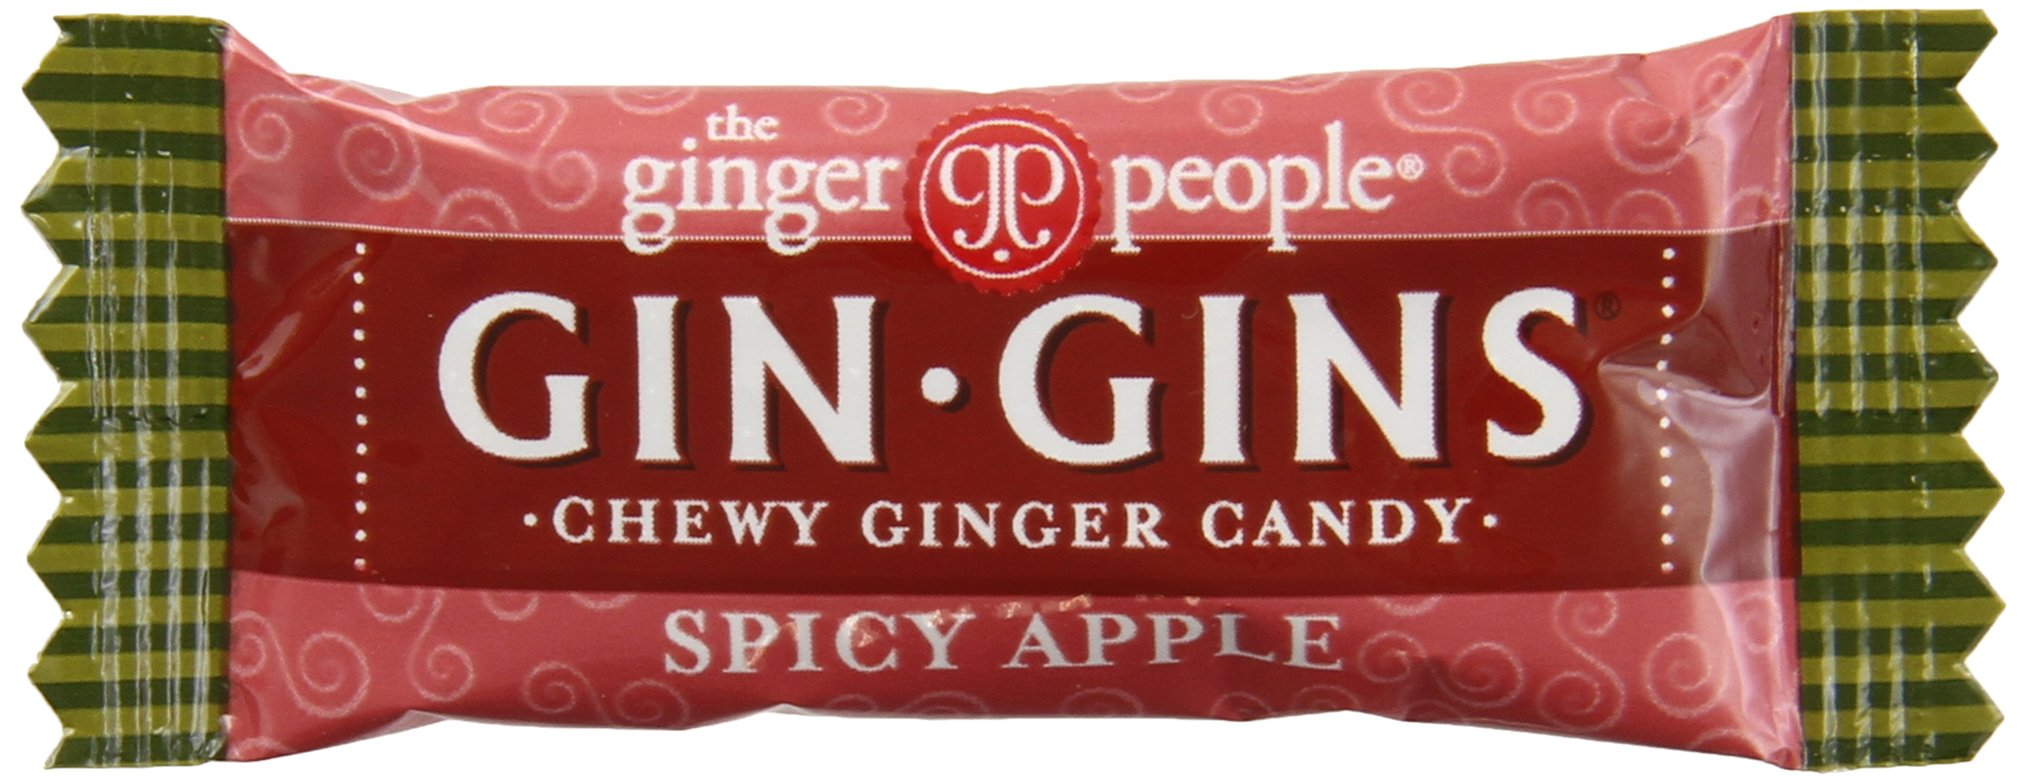 Gin Gins - The Ginger People Spicy Apple Ginger Chews, 11-Pound Bag by The Ginger People